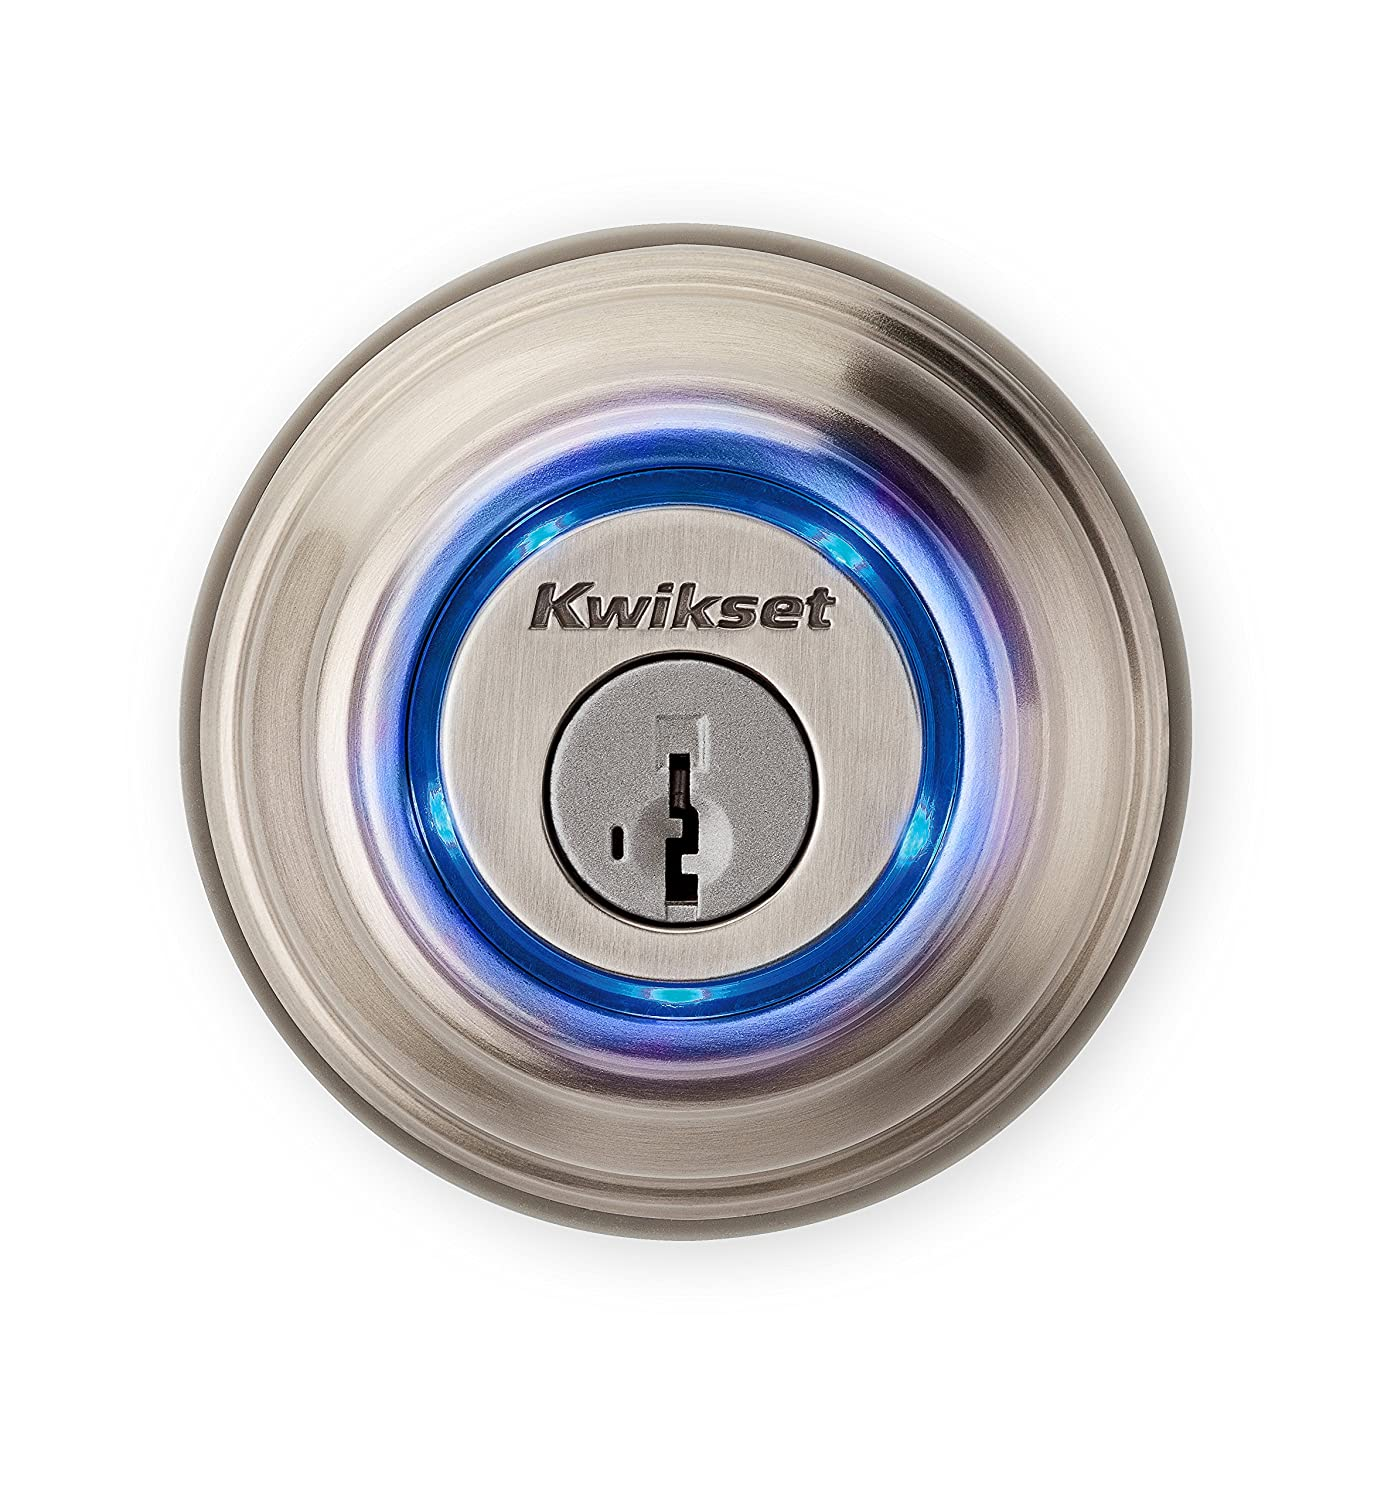 Kwikset - Kevo 99250-202 Kevo 2.0 Touch-to-Open Smart Lock in Satin Nickel